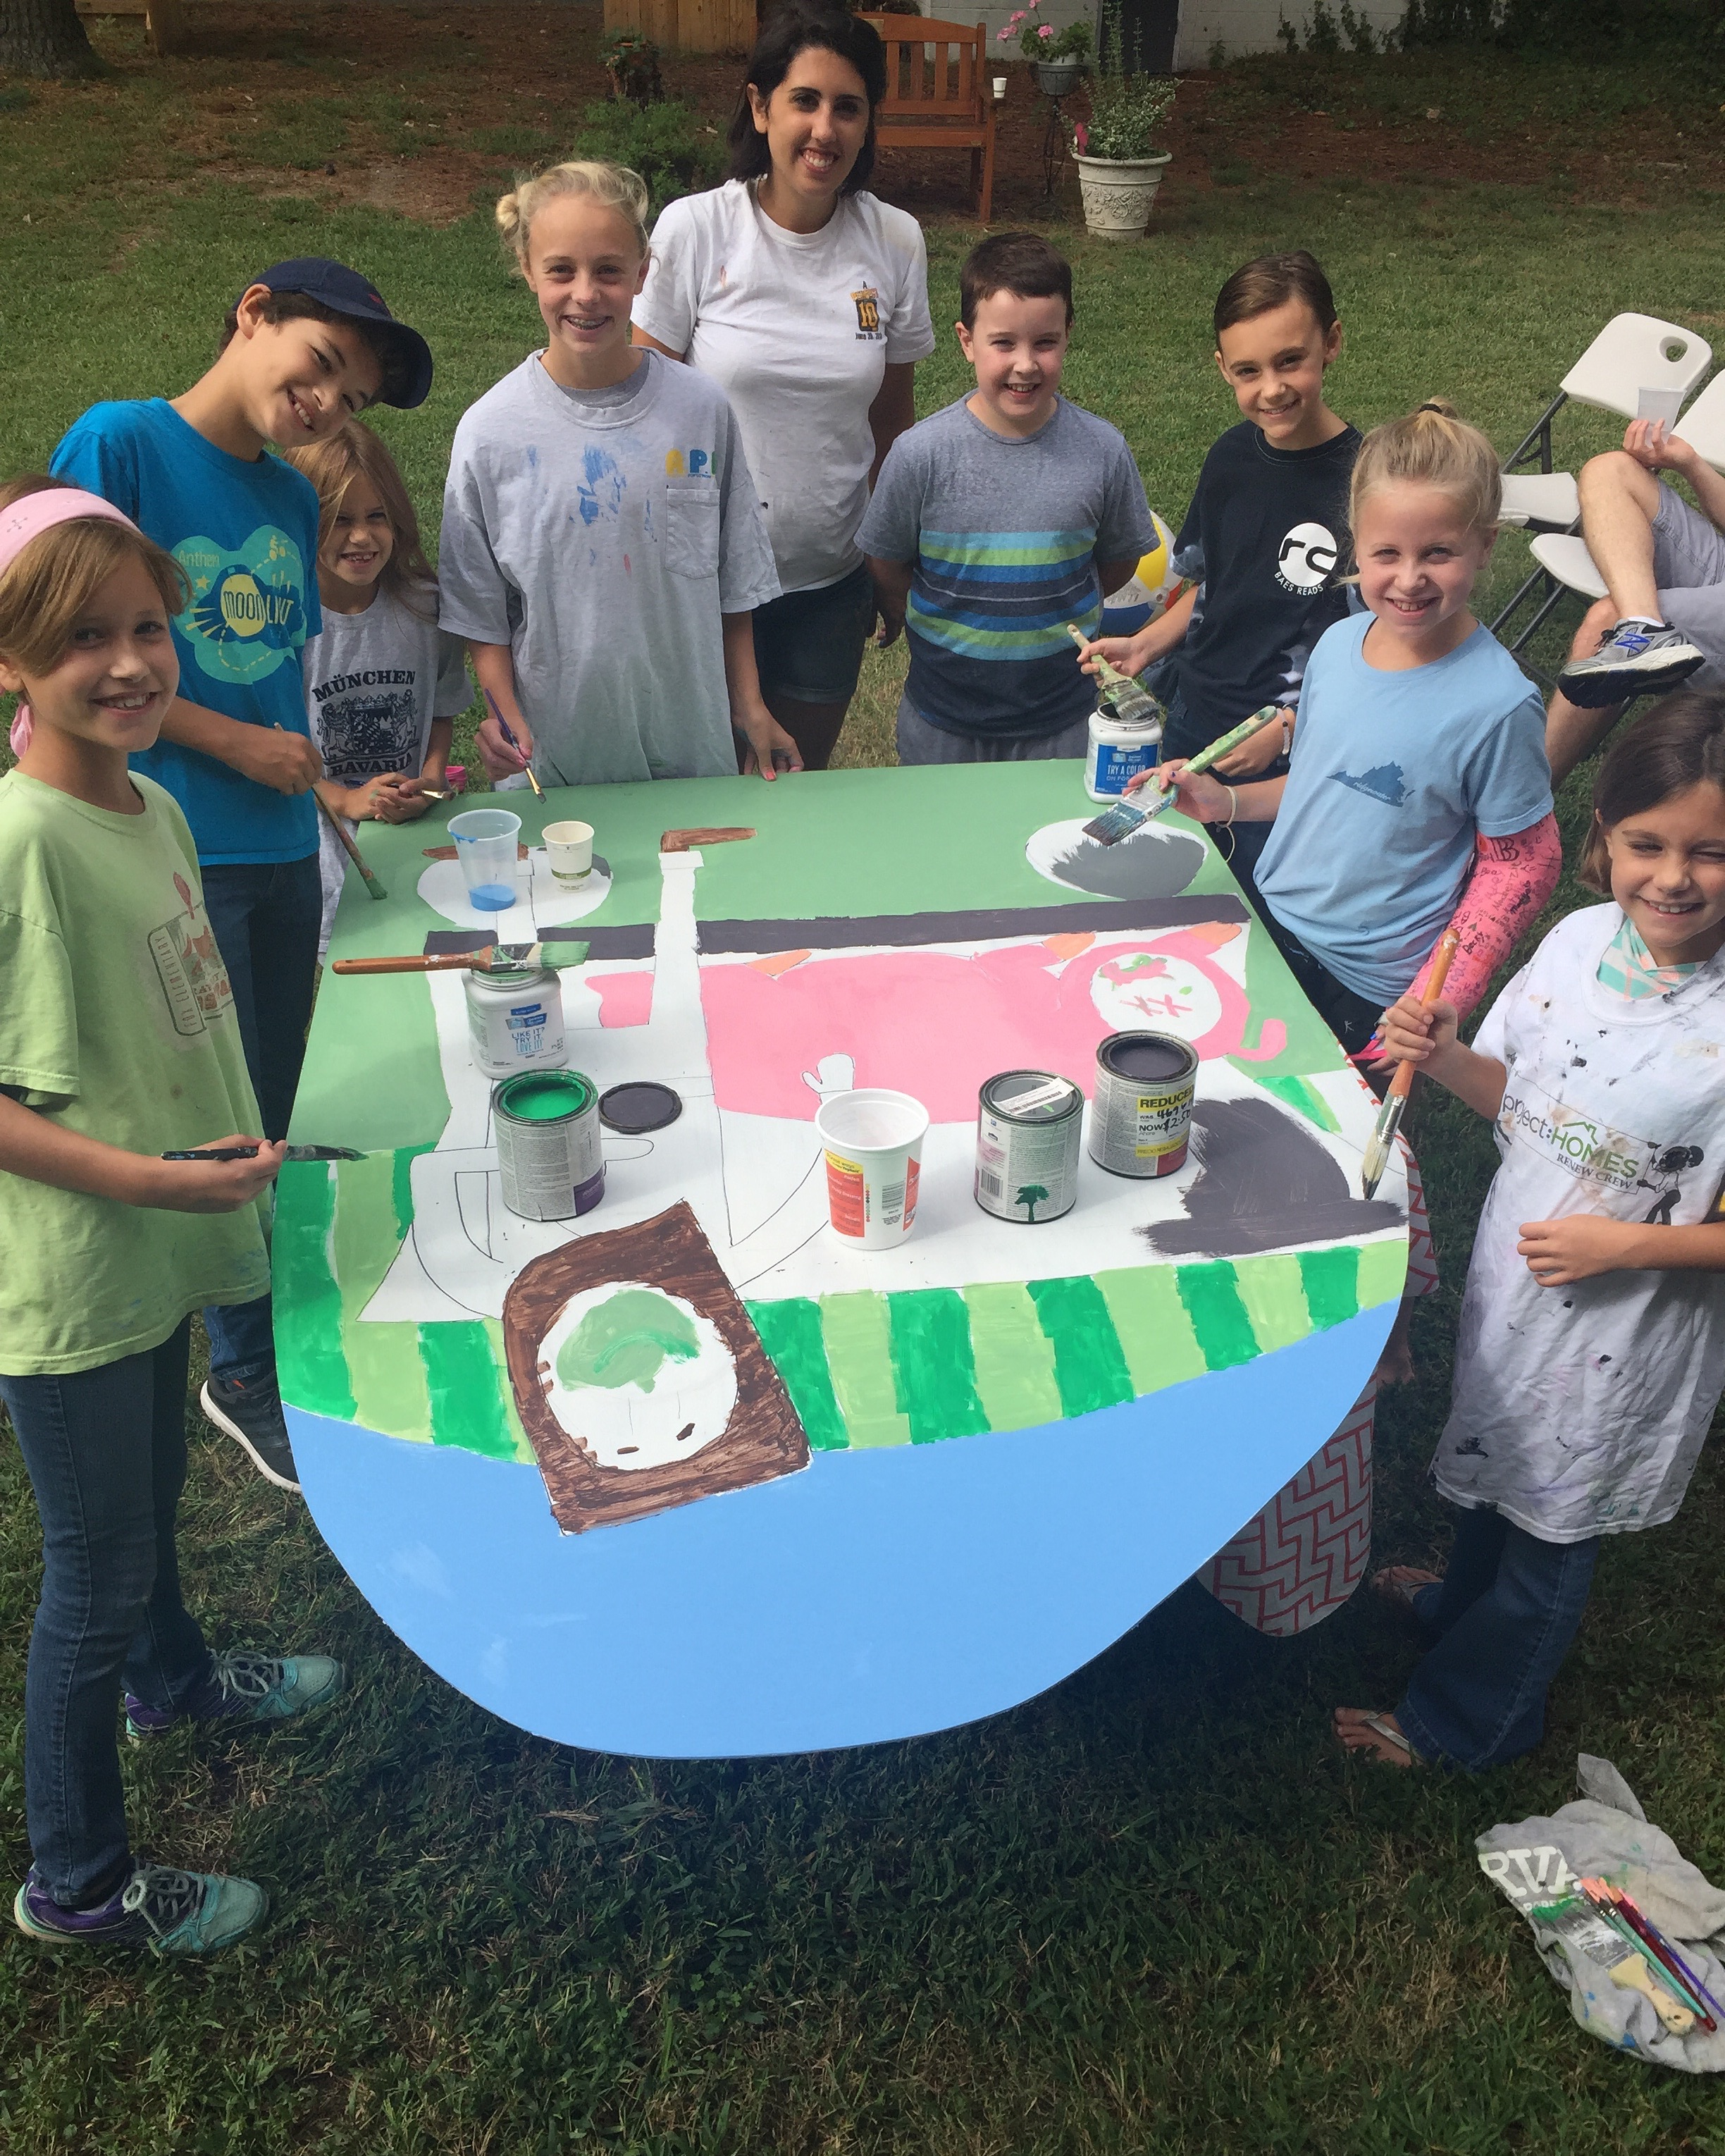 Pictured: Emily helping our  City Kids  tap into their creativity as they help prep for this year's  Harvest Party .